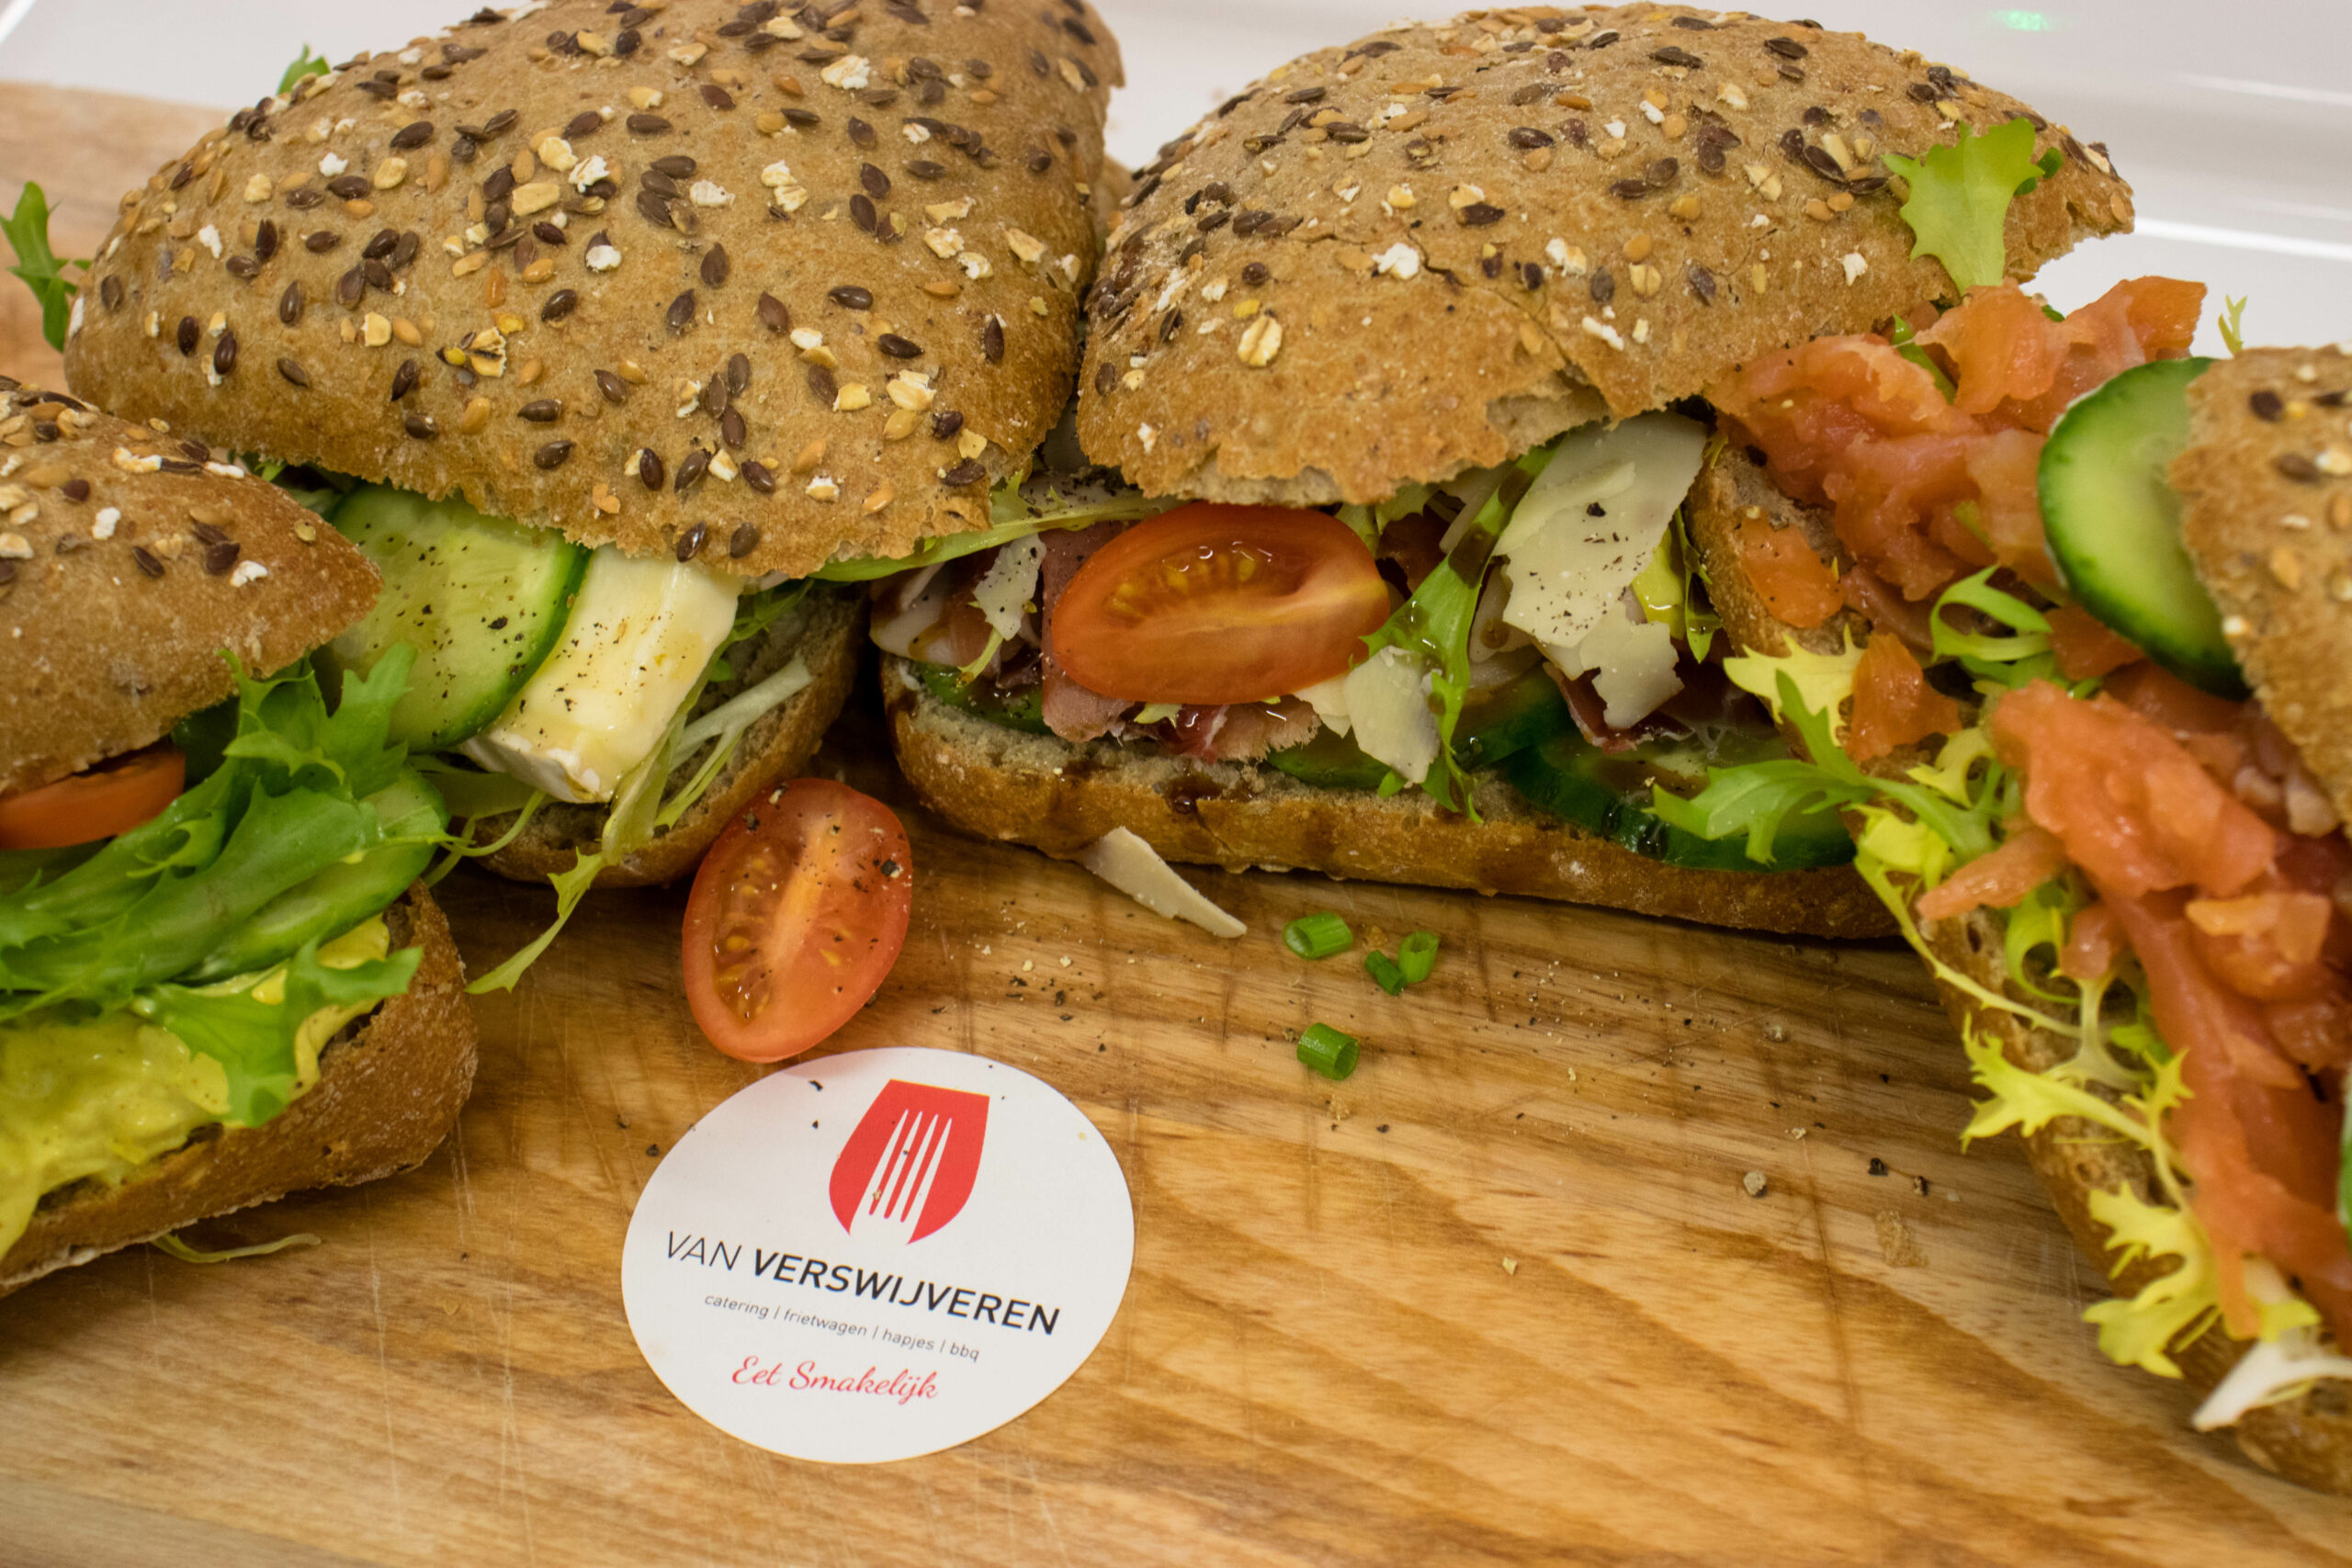 broodjes, lunch, bedrijf catering, hapjes, fingerfood, partyservice, sandwich, smoothies